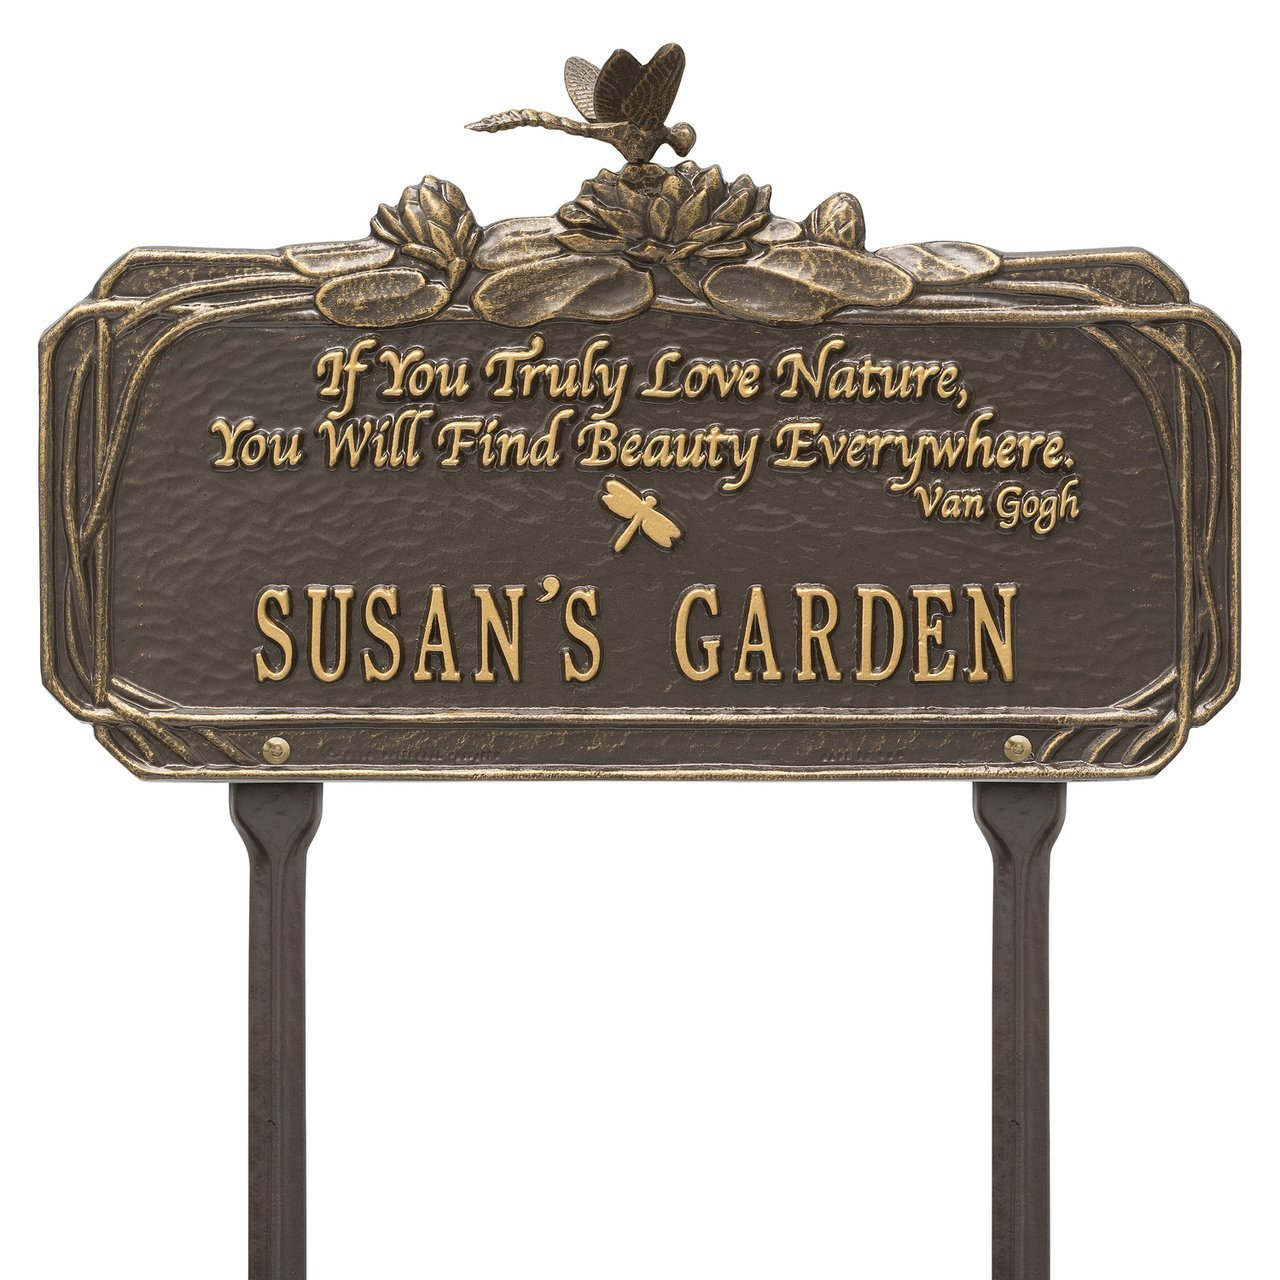 Whitehall Customized Aluminum Dragonfly Garden Plaque with Quote 16.5'' W x 8.5'' H (1 Line)